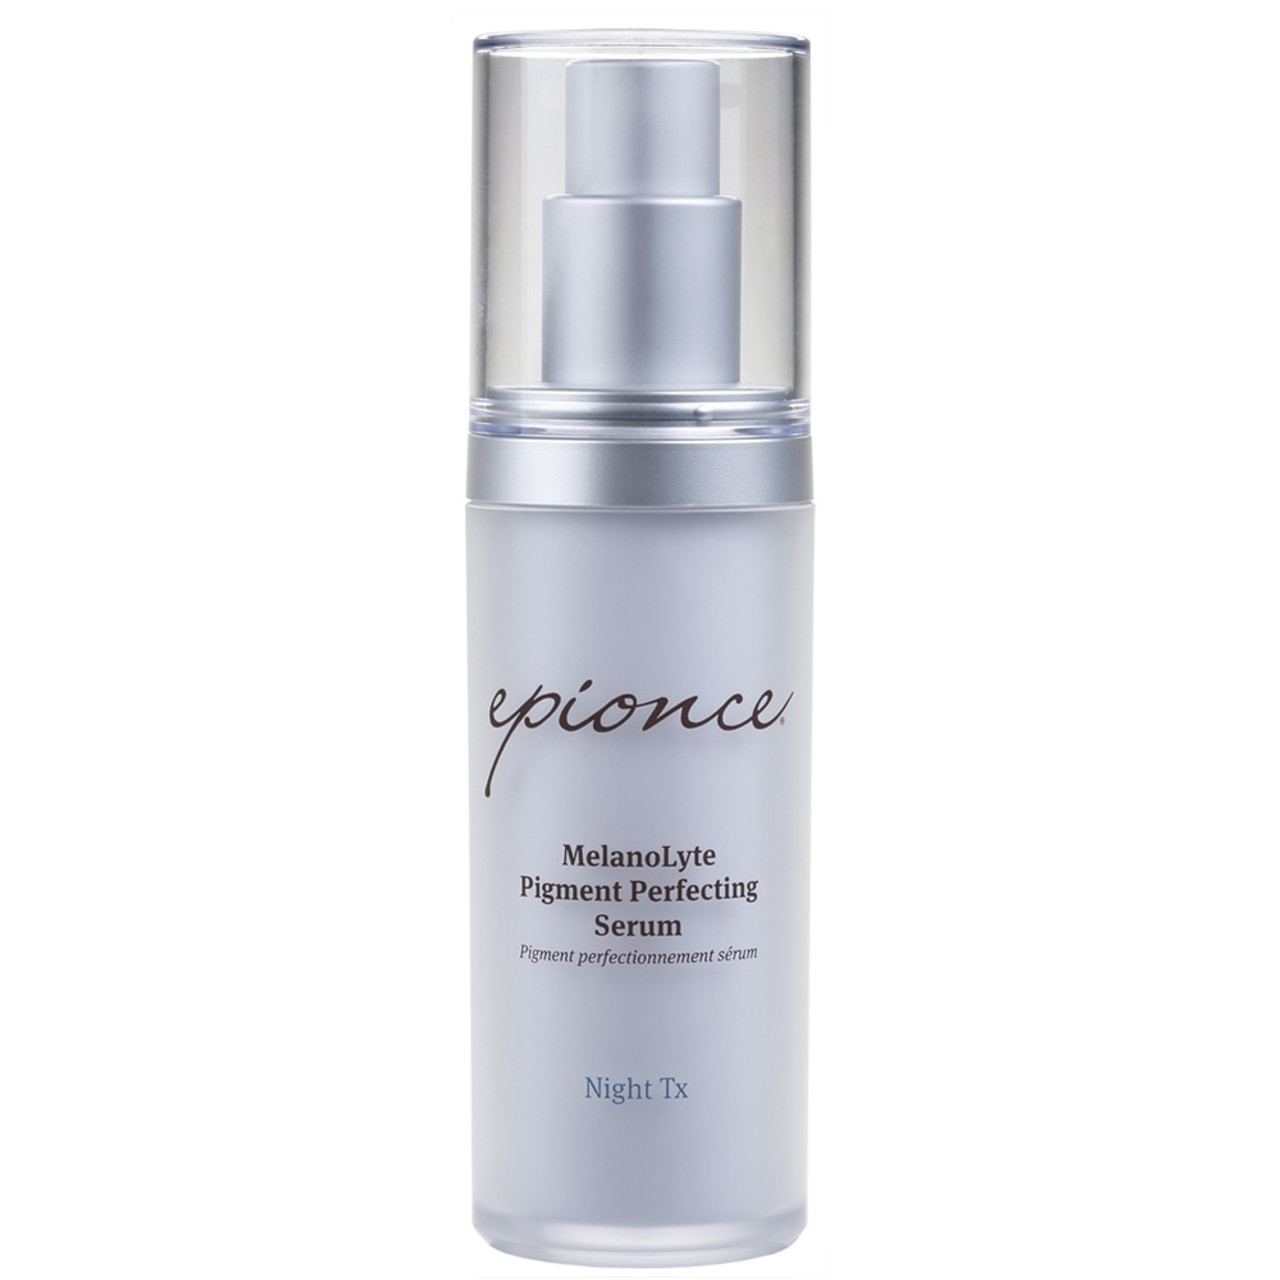 epionce MelanoLyte Pigment Perfecting Serum